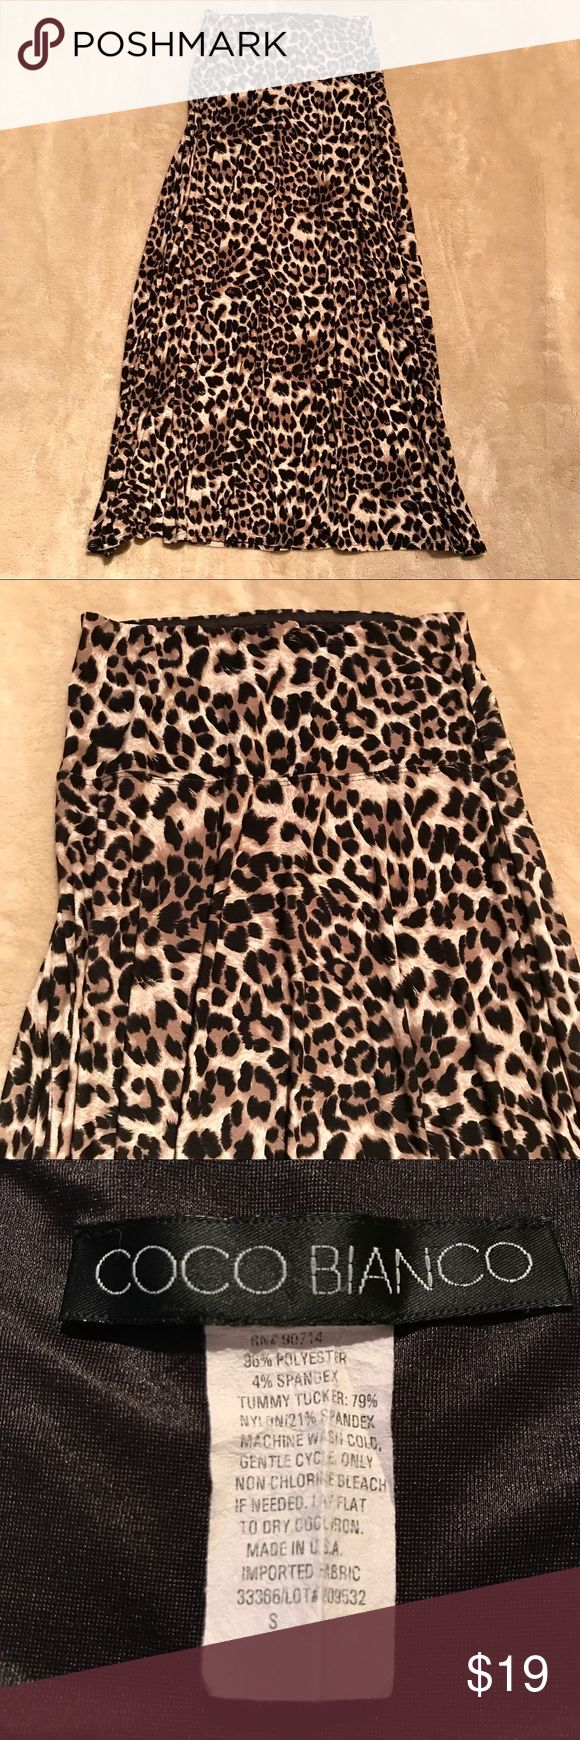 """Animal print maxi Polyester spandex animal print maxi skirt with comfortable tummy tucker band of nylon spandex. Elastic waistband. Preloved in excellent condition.  Waist 12.5"""" across unstretched  Length 38"""" Coco Blanco Skirts Maxi"""